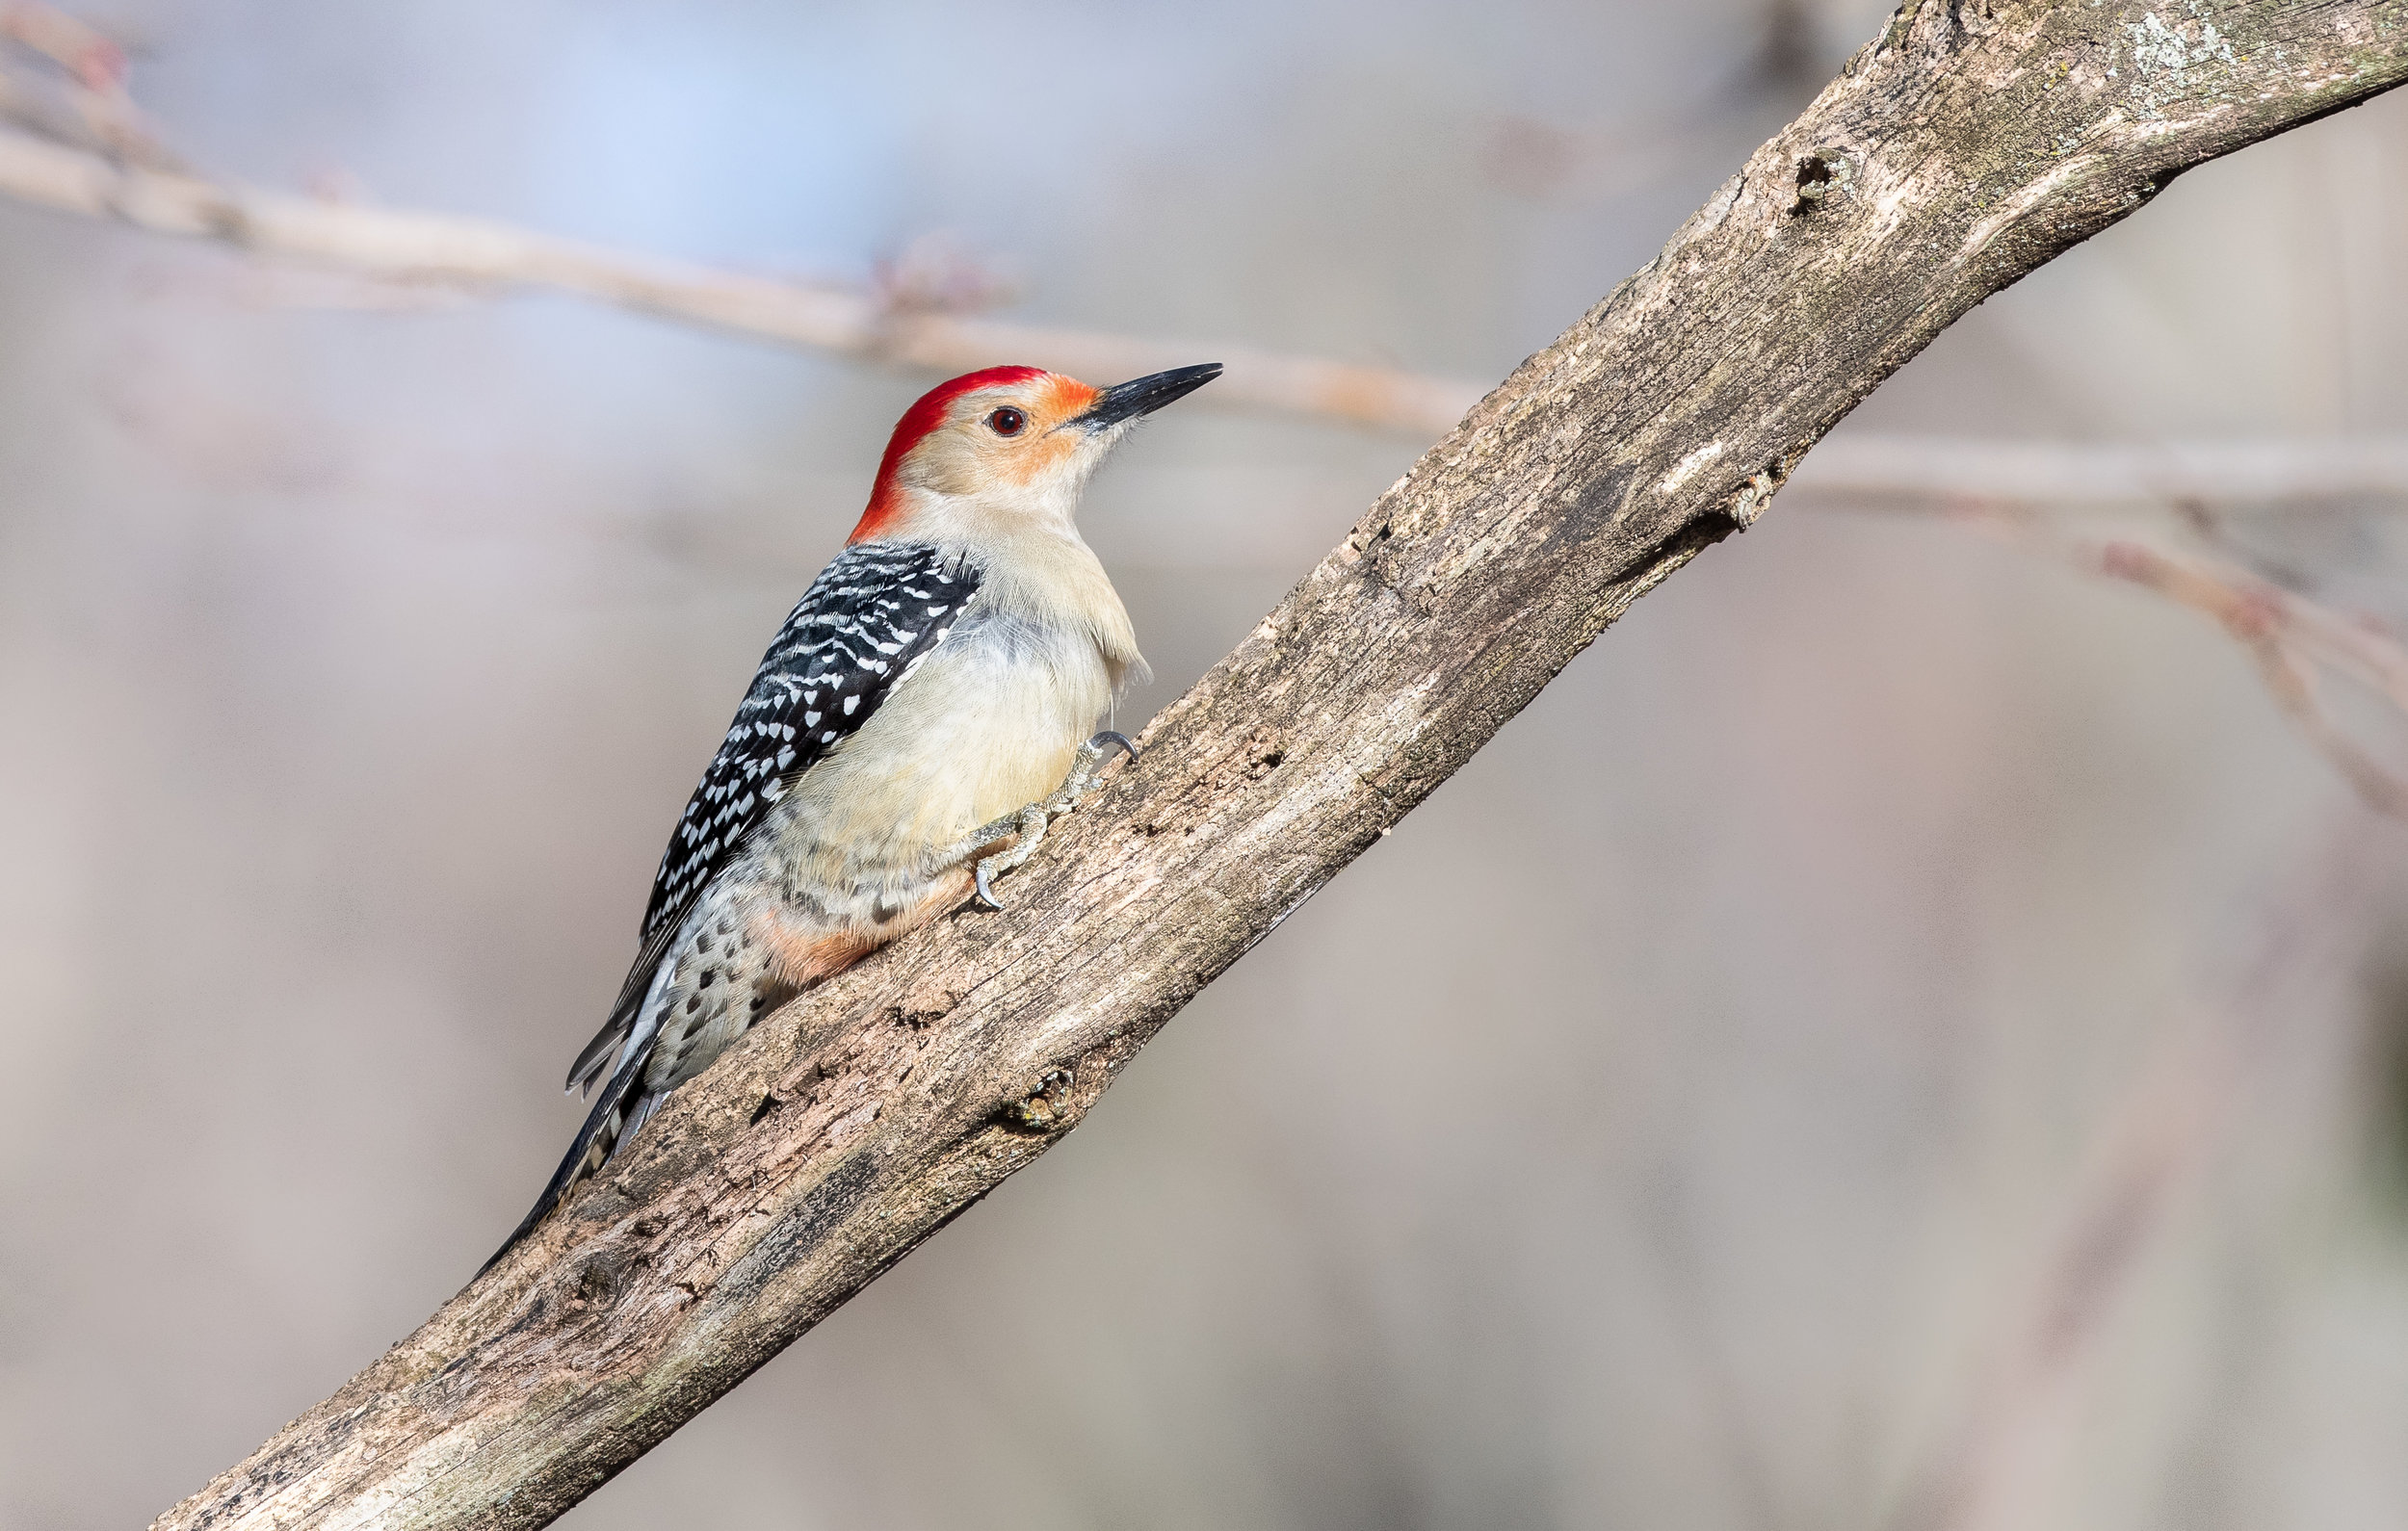 And a little surprise at the end! Red Bellied Woodpecker making an appearance